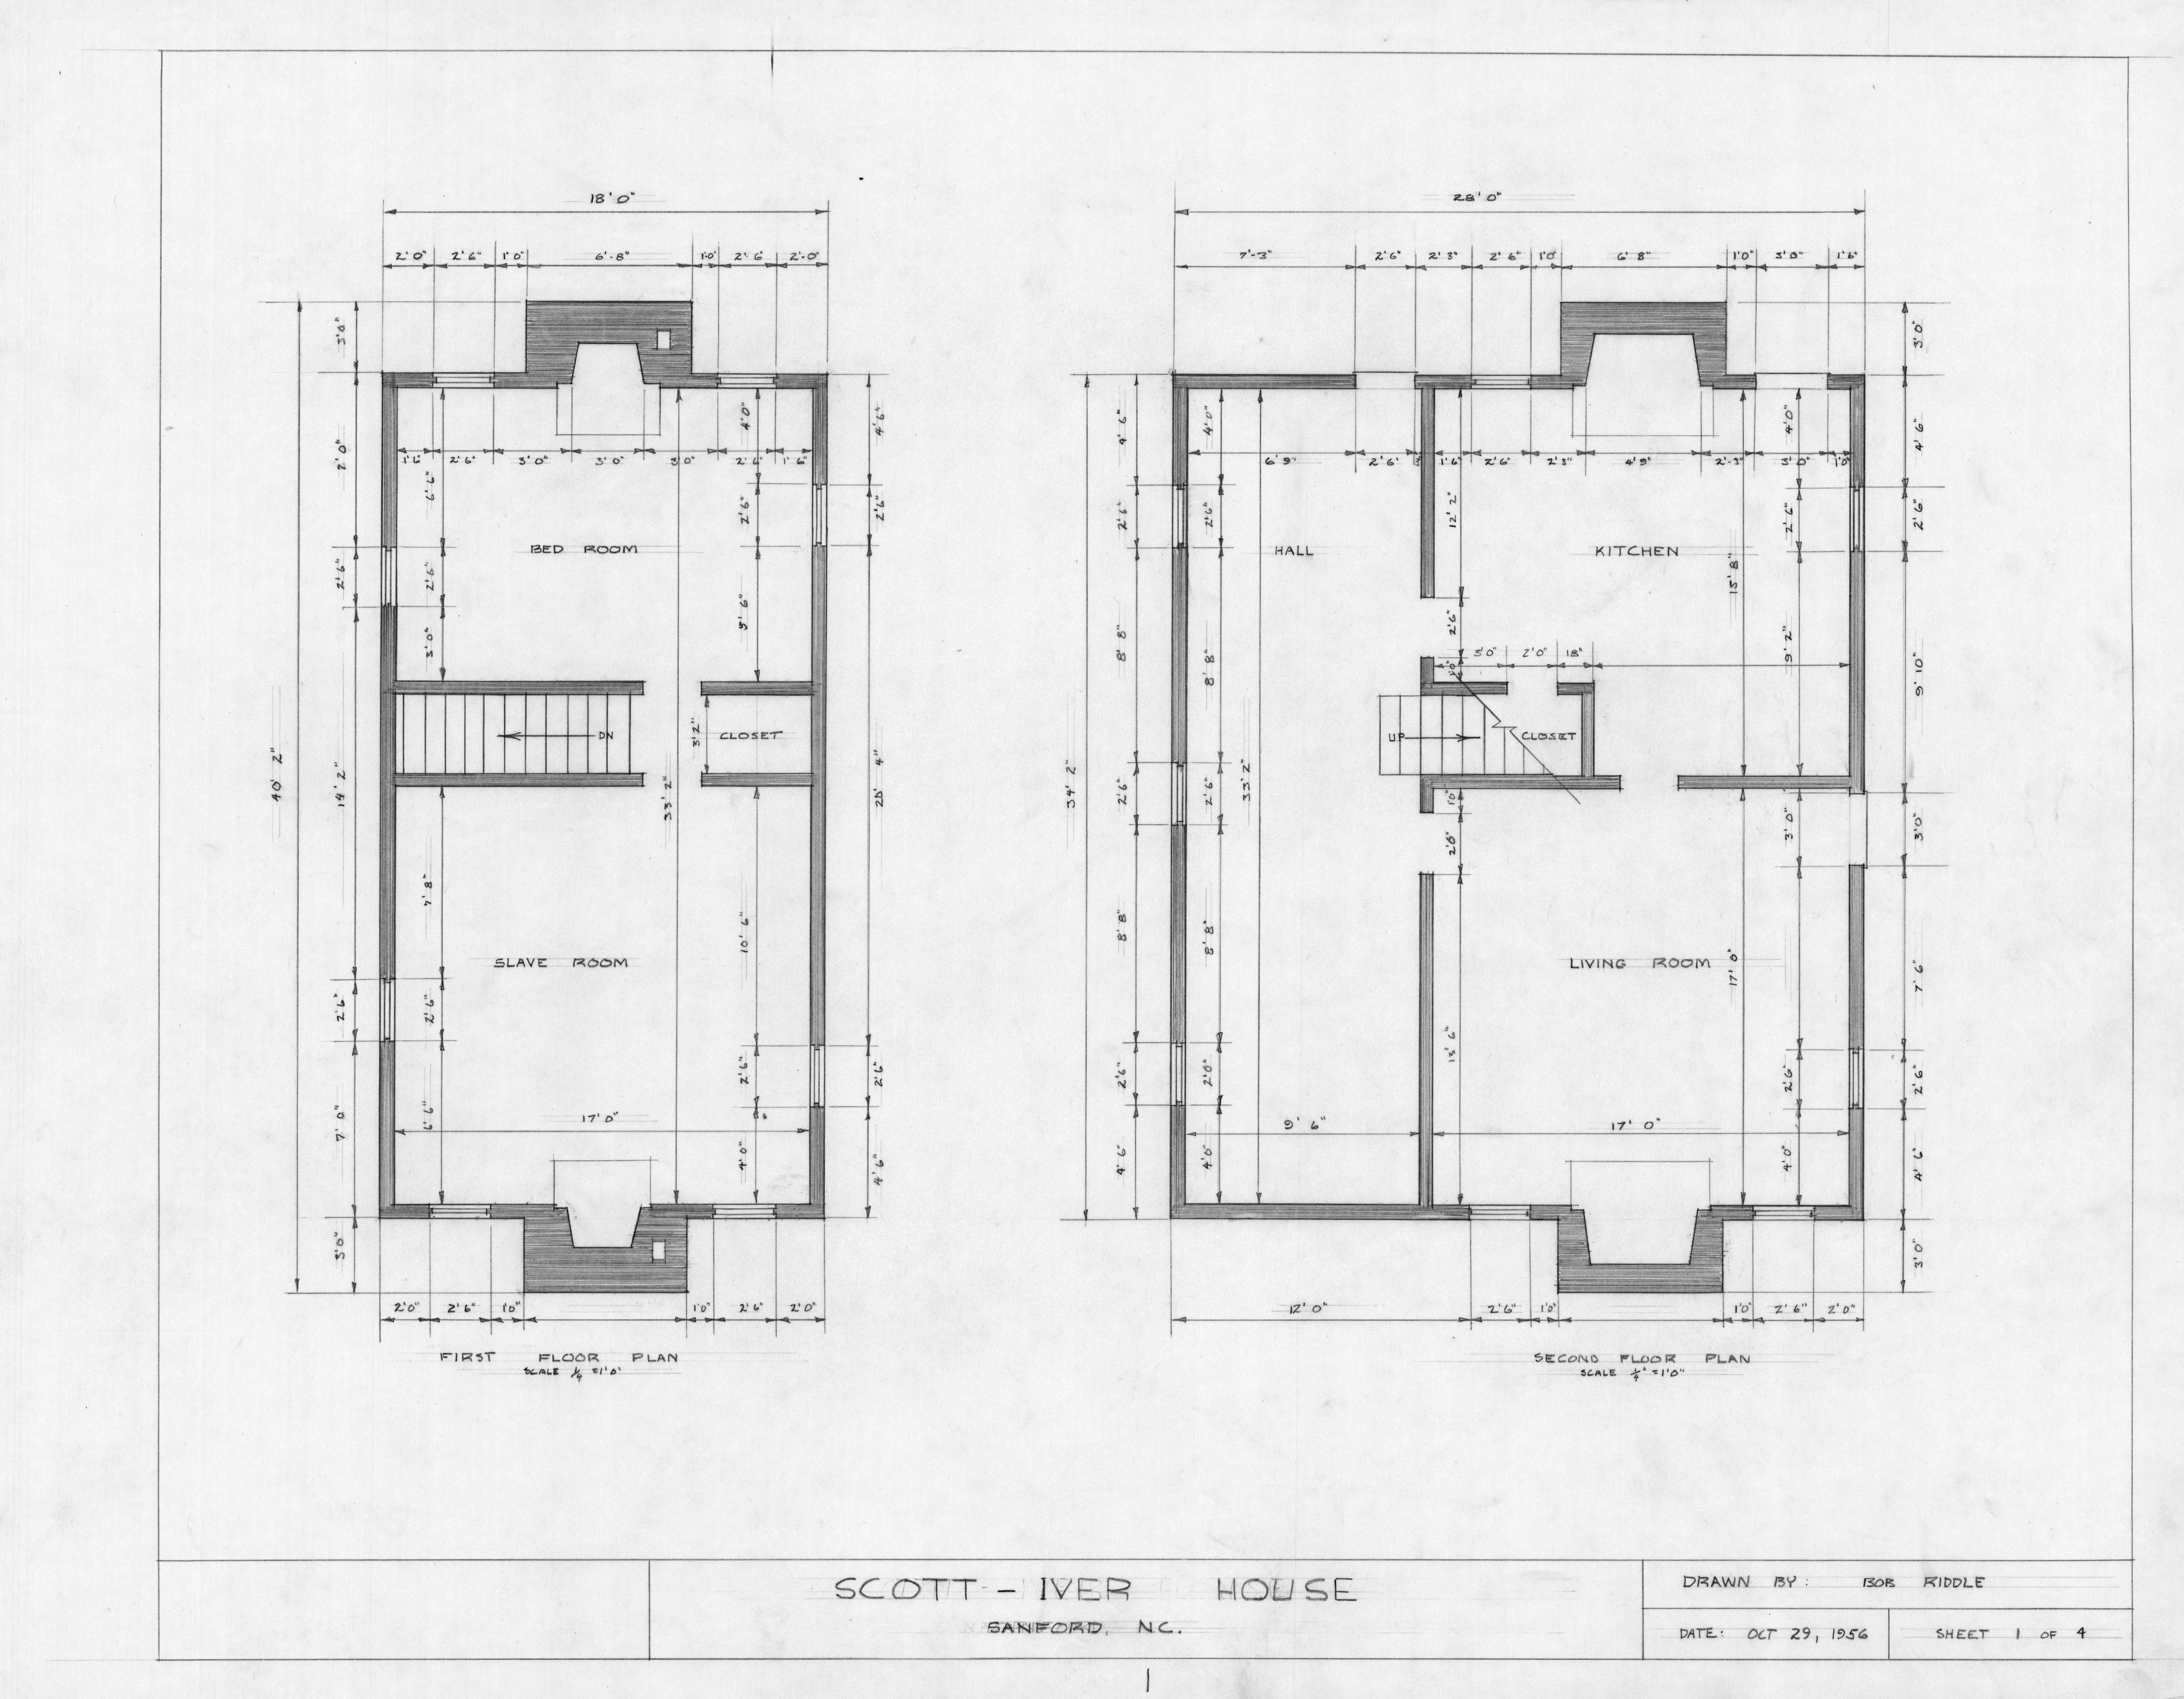 Floor Plans Evandor Mciver House Sanford North Carolina